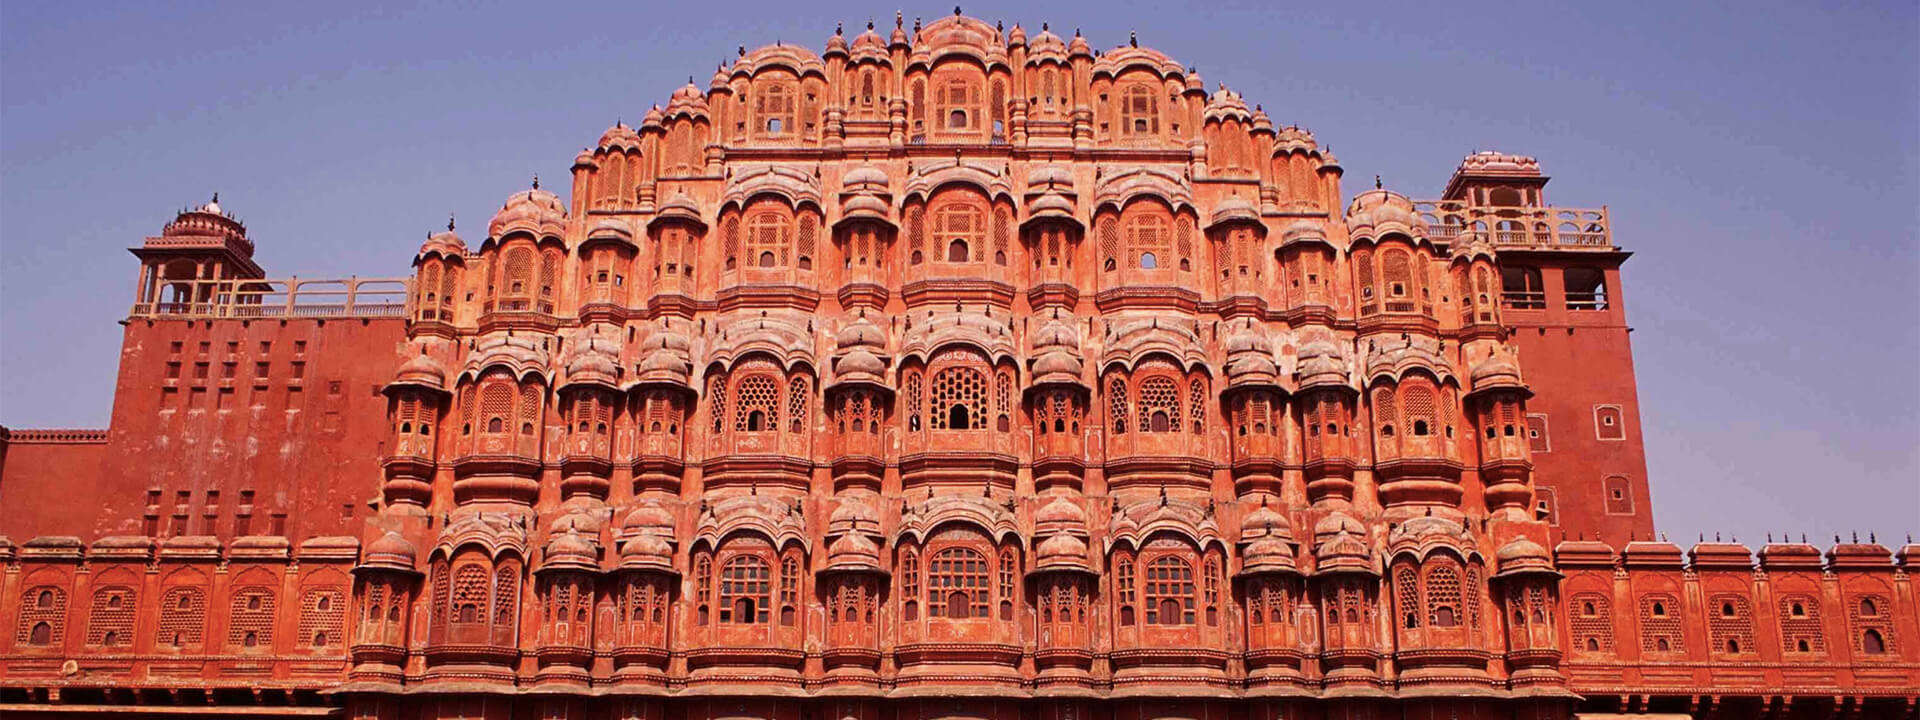 The World Famous Golden Triangle of India Tour